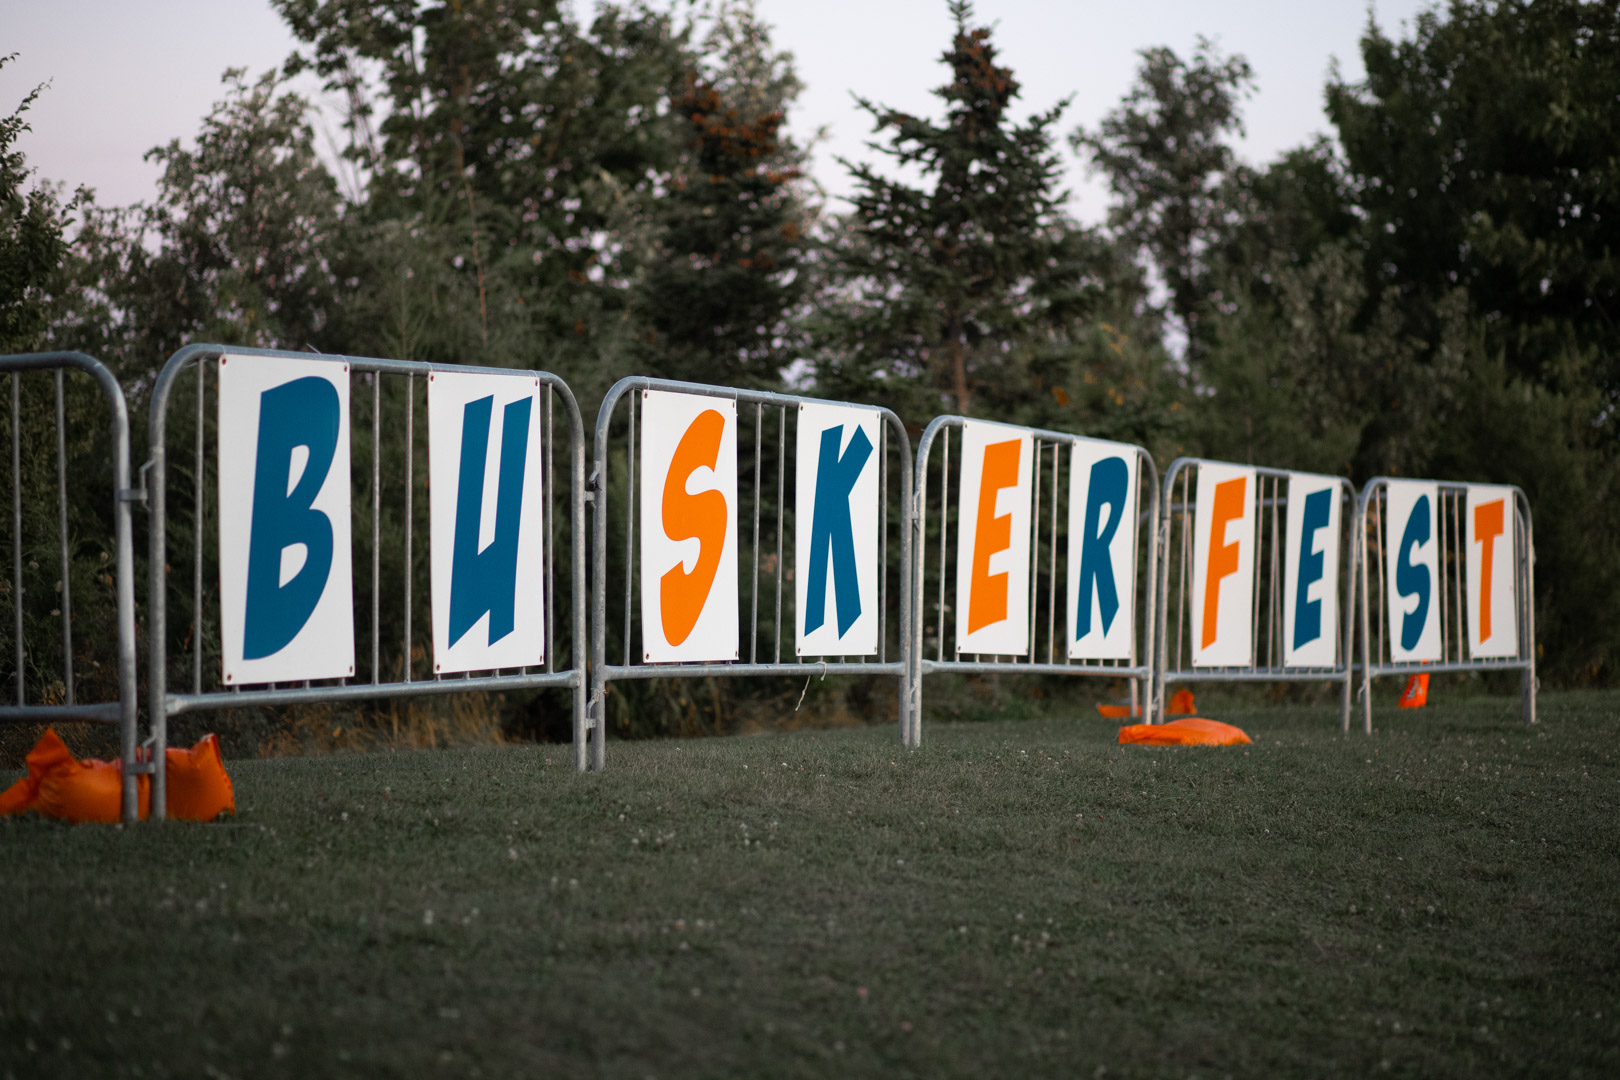 Close-up Of The Buskerfest Sign